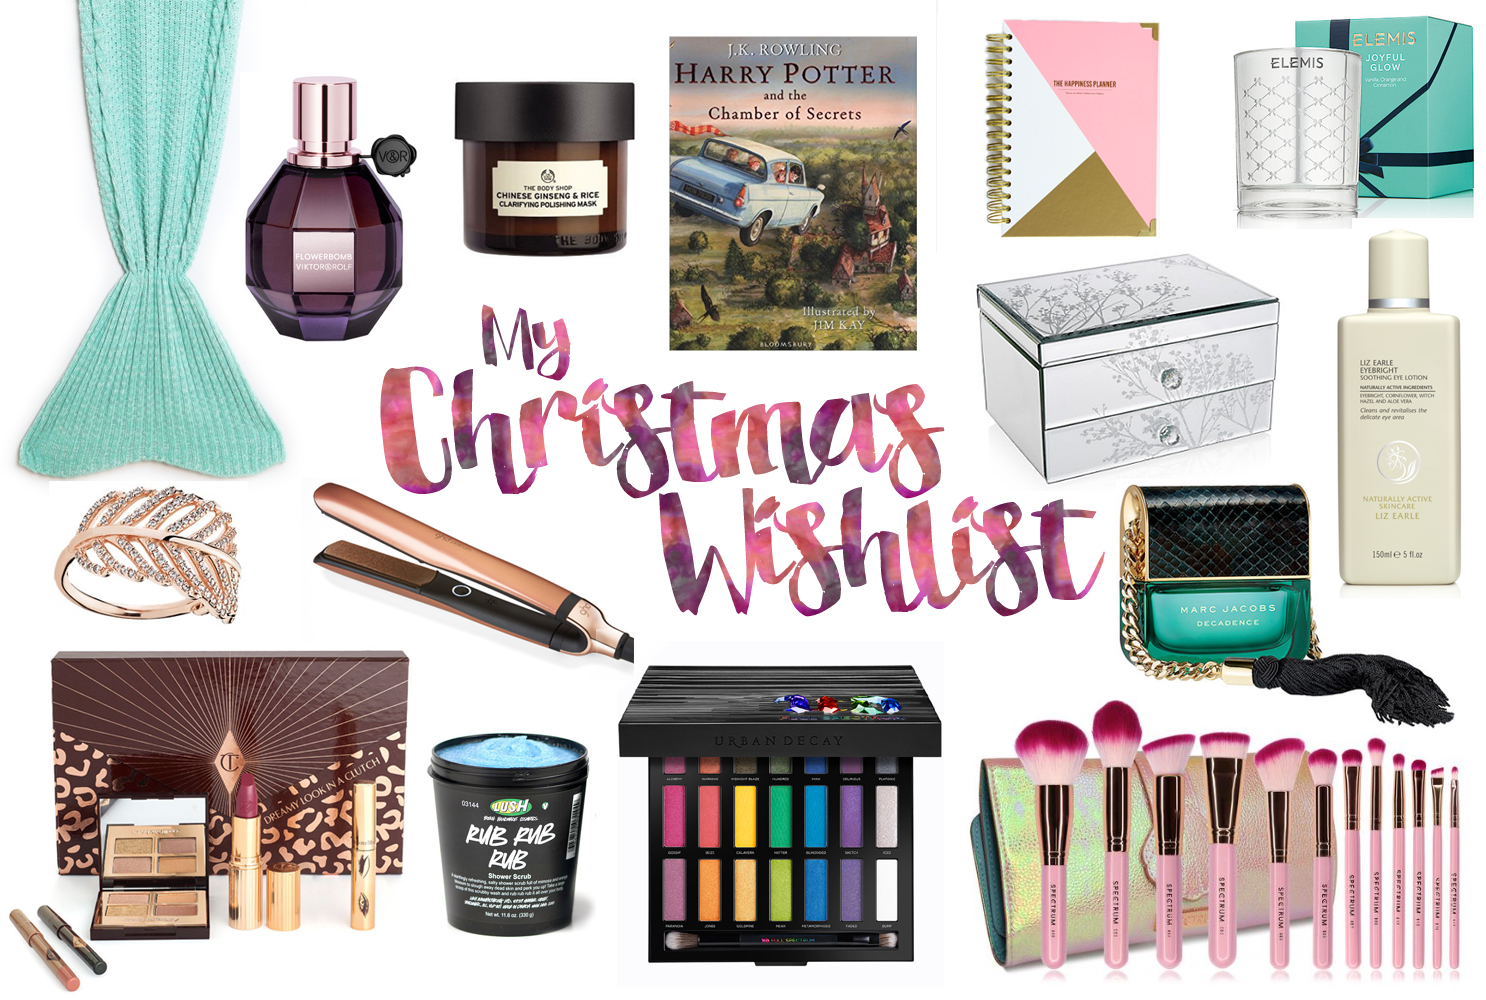 My Christmas Wishlist, Katie Kirk Loves, Gift Guide, Christmas Wish List, Christmas Gift Ideas, Gift Ideas, UK Blogger